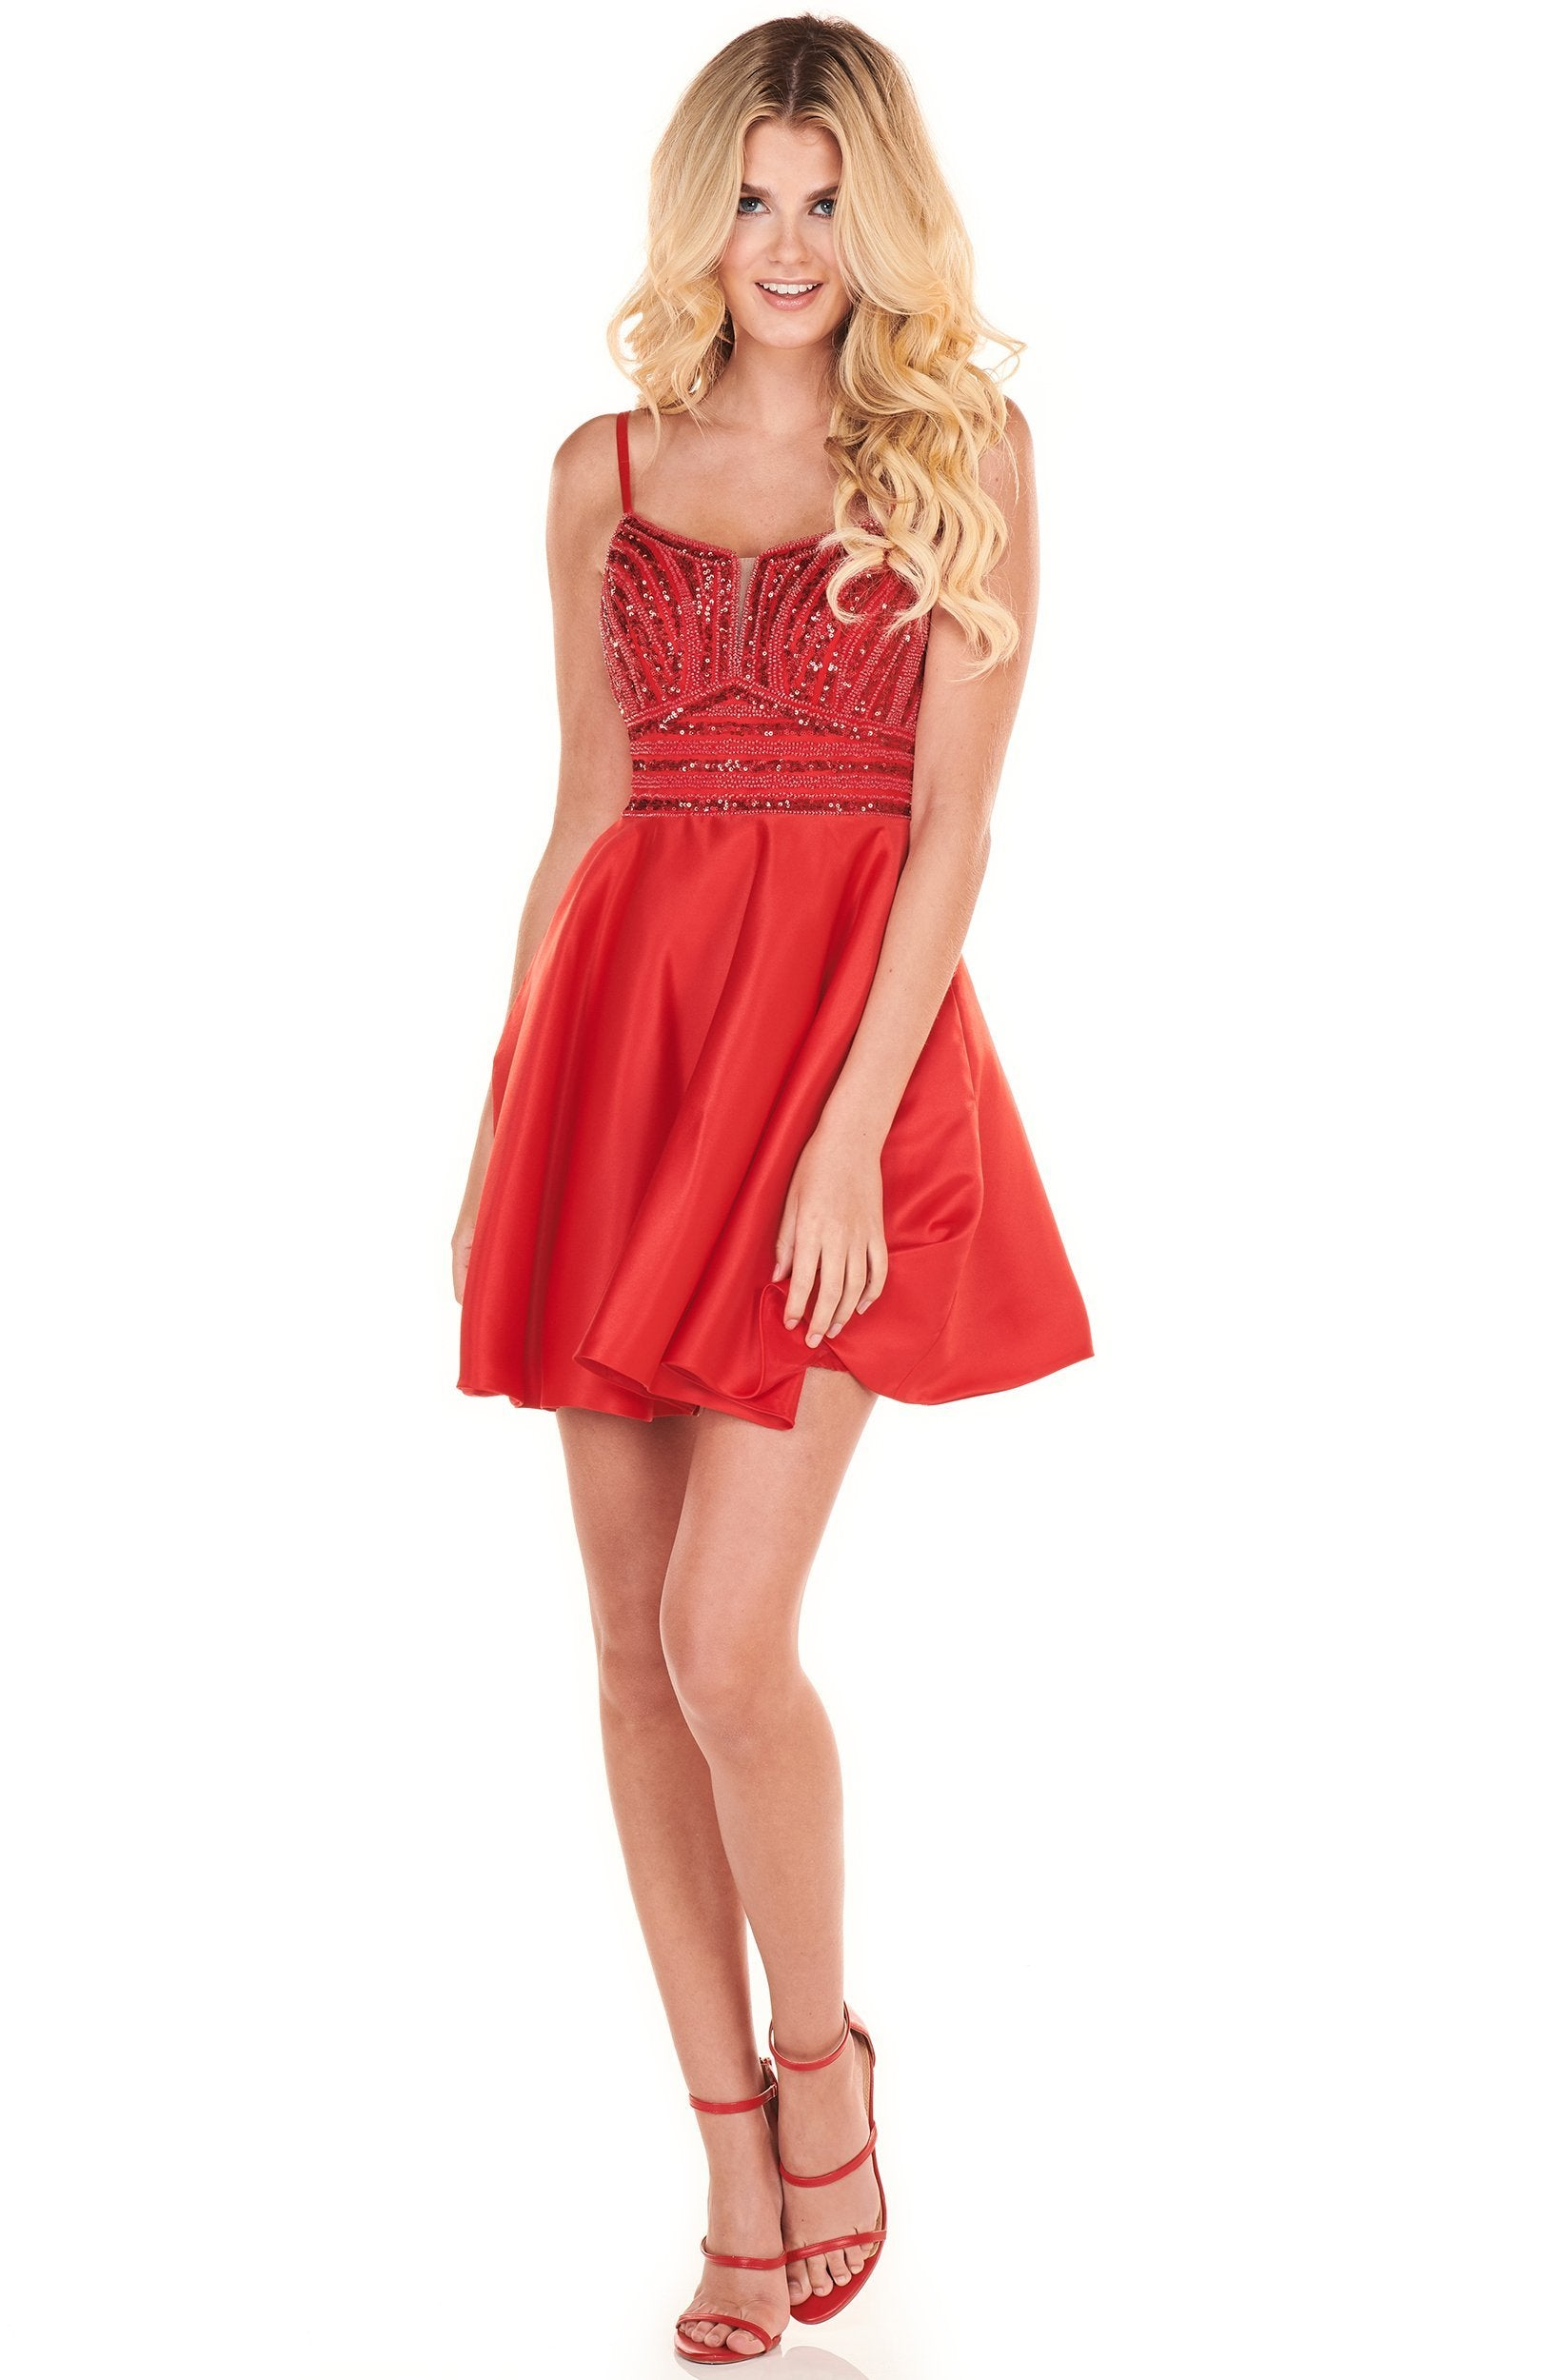 Rachel Allan Shorts - 4013 Beaded A-Line Strappy Back Dress In Red